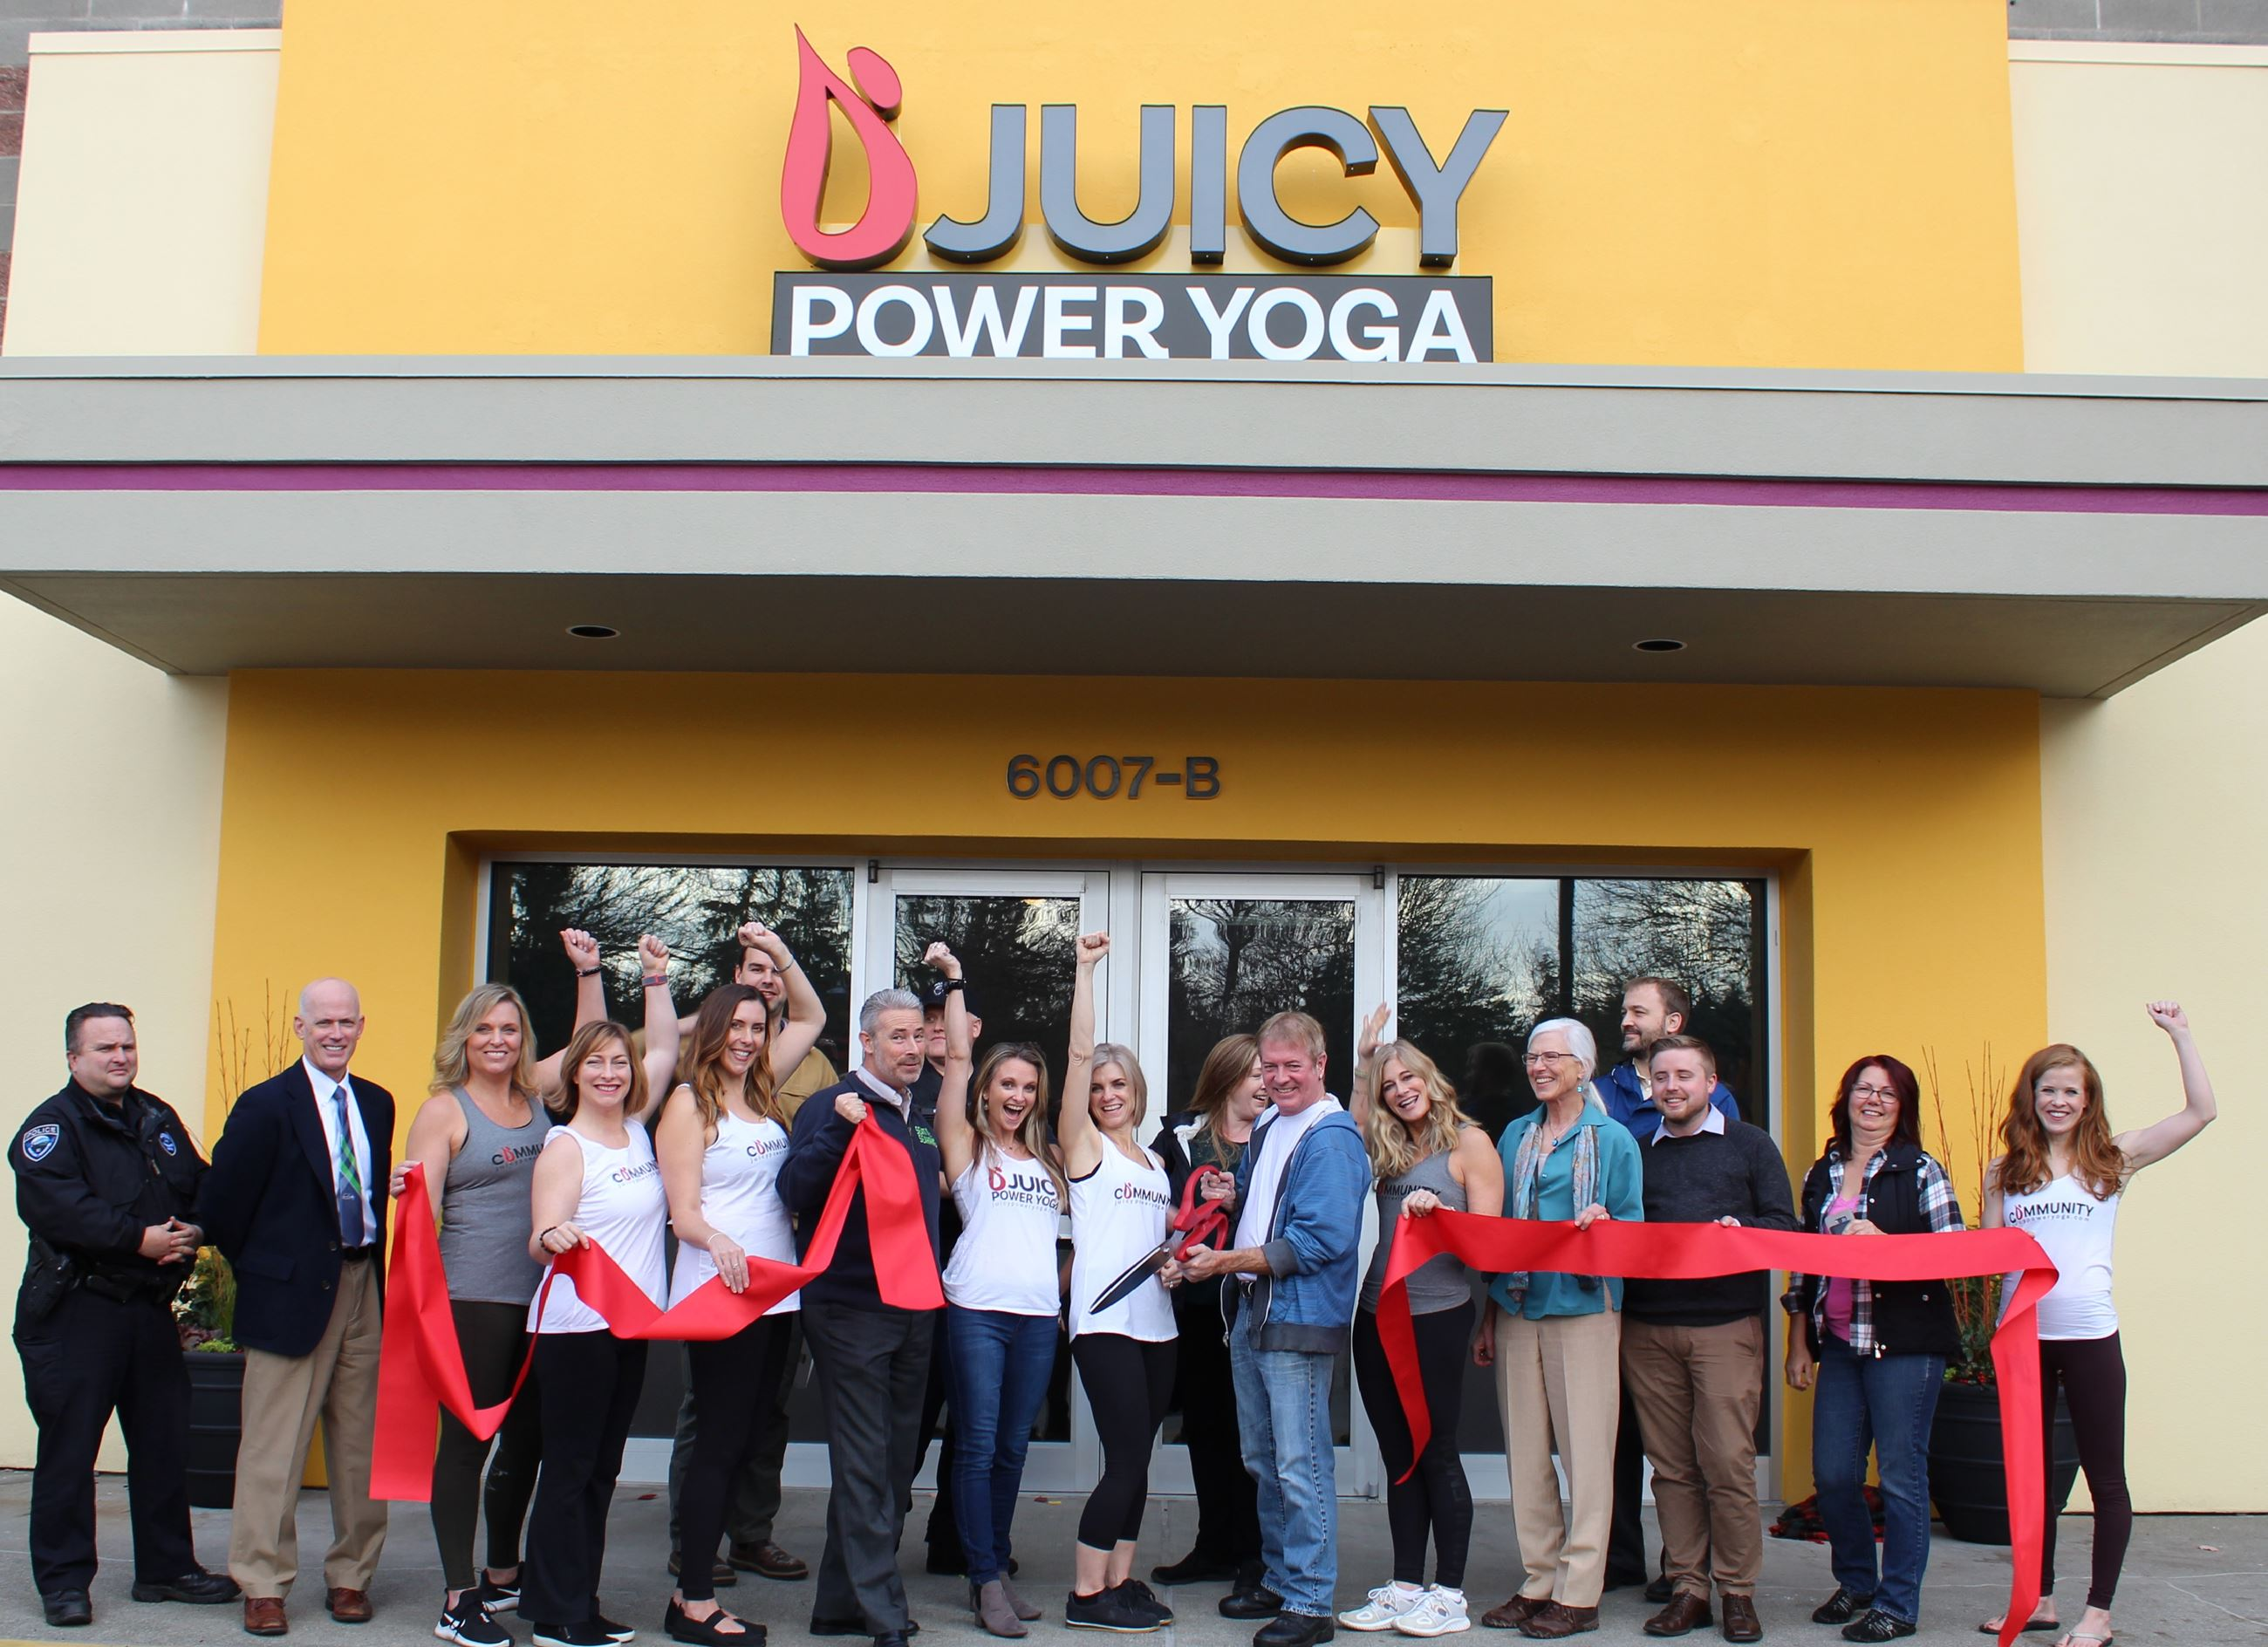 Juicy Power Yoga Ribbon Cutting Event